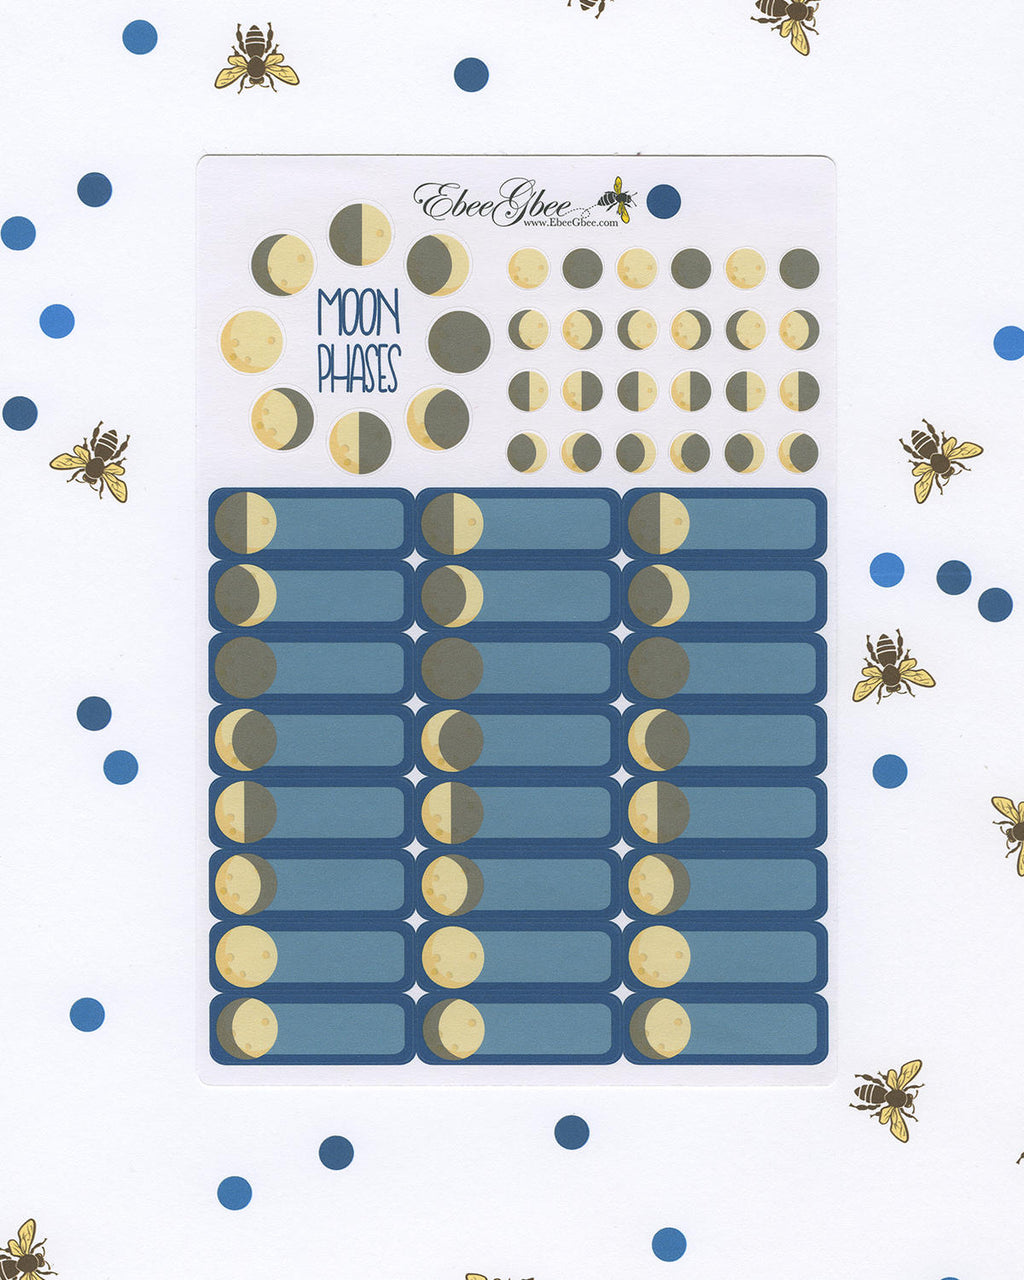 MOON PHASES Boxes Planner Stickers |  BeeColorful